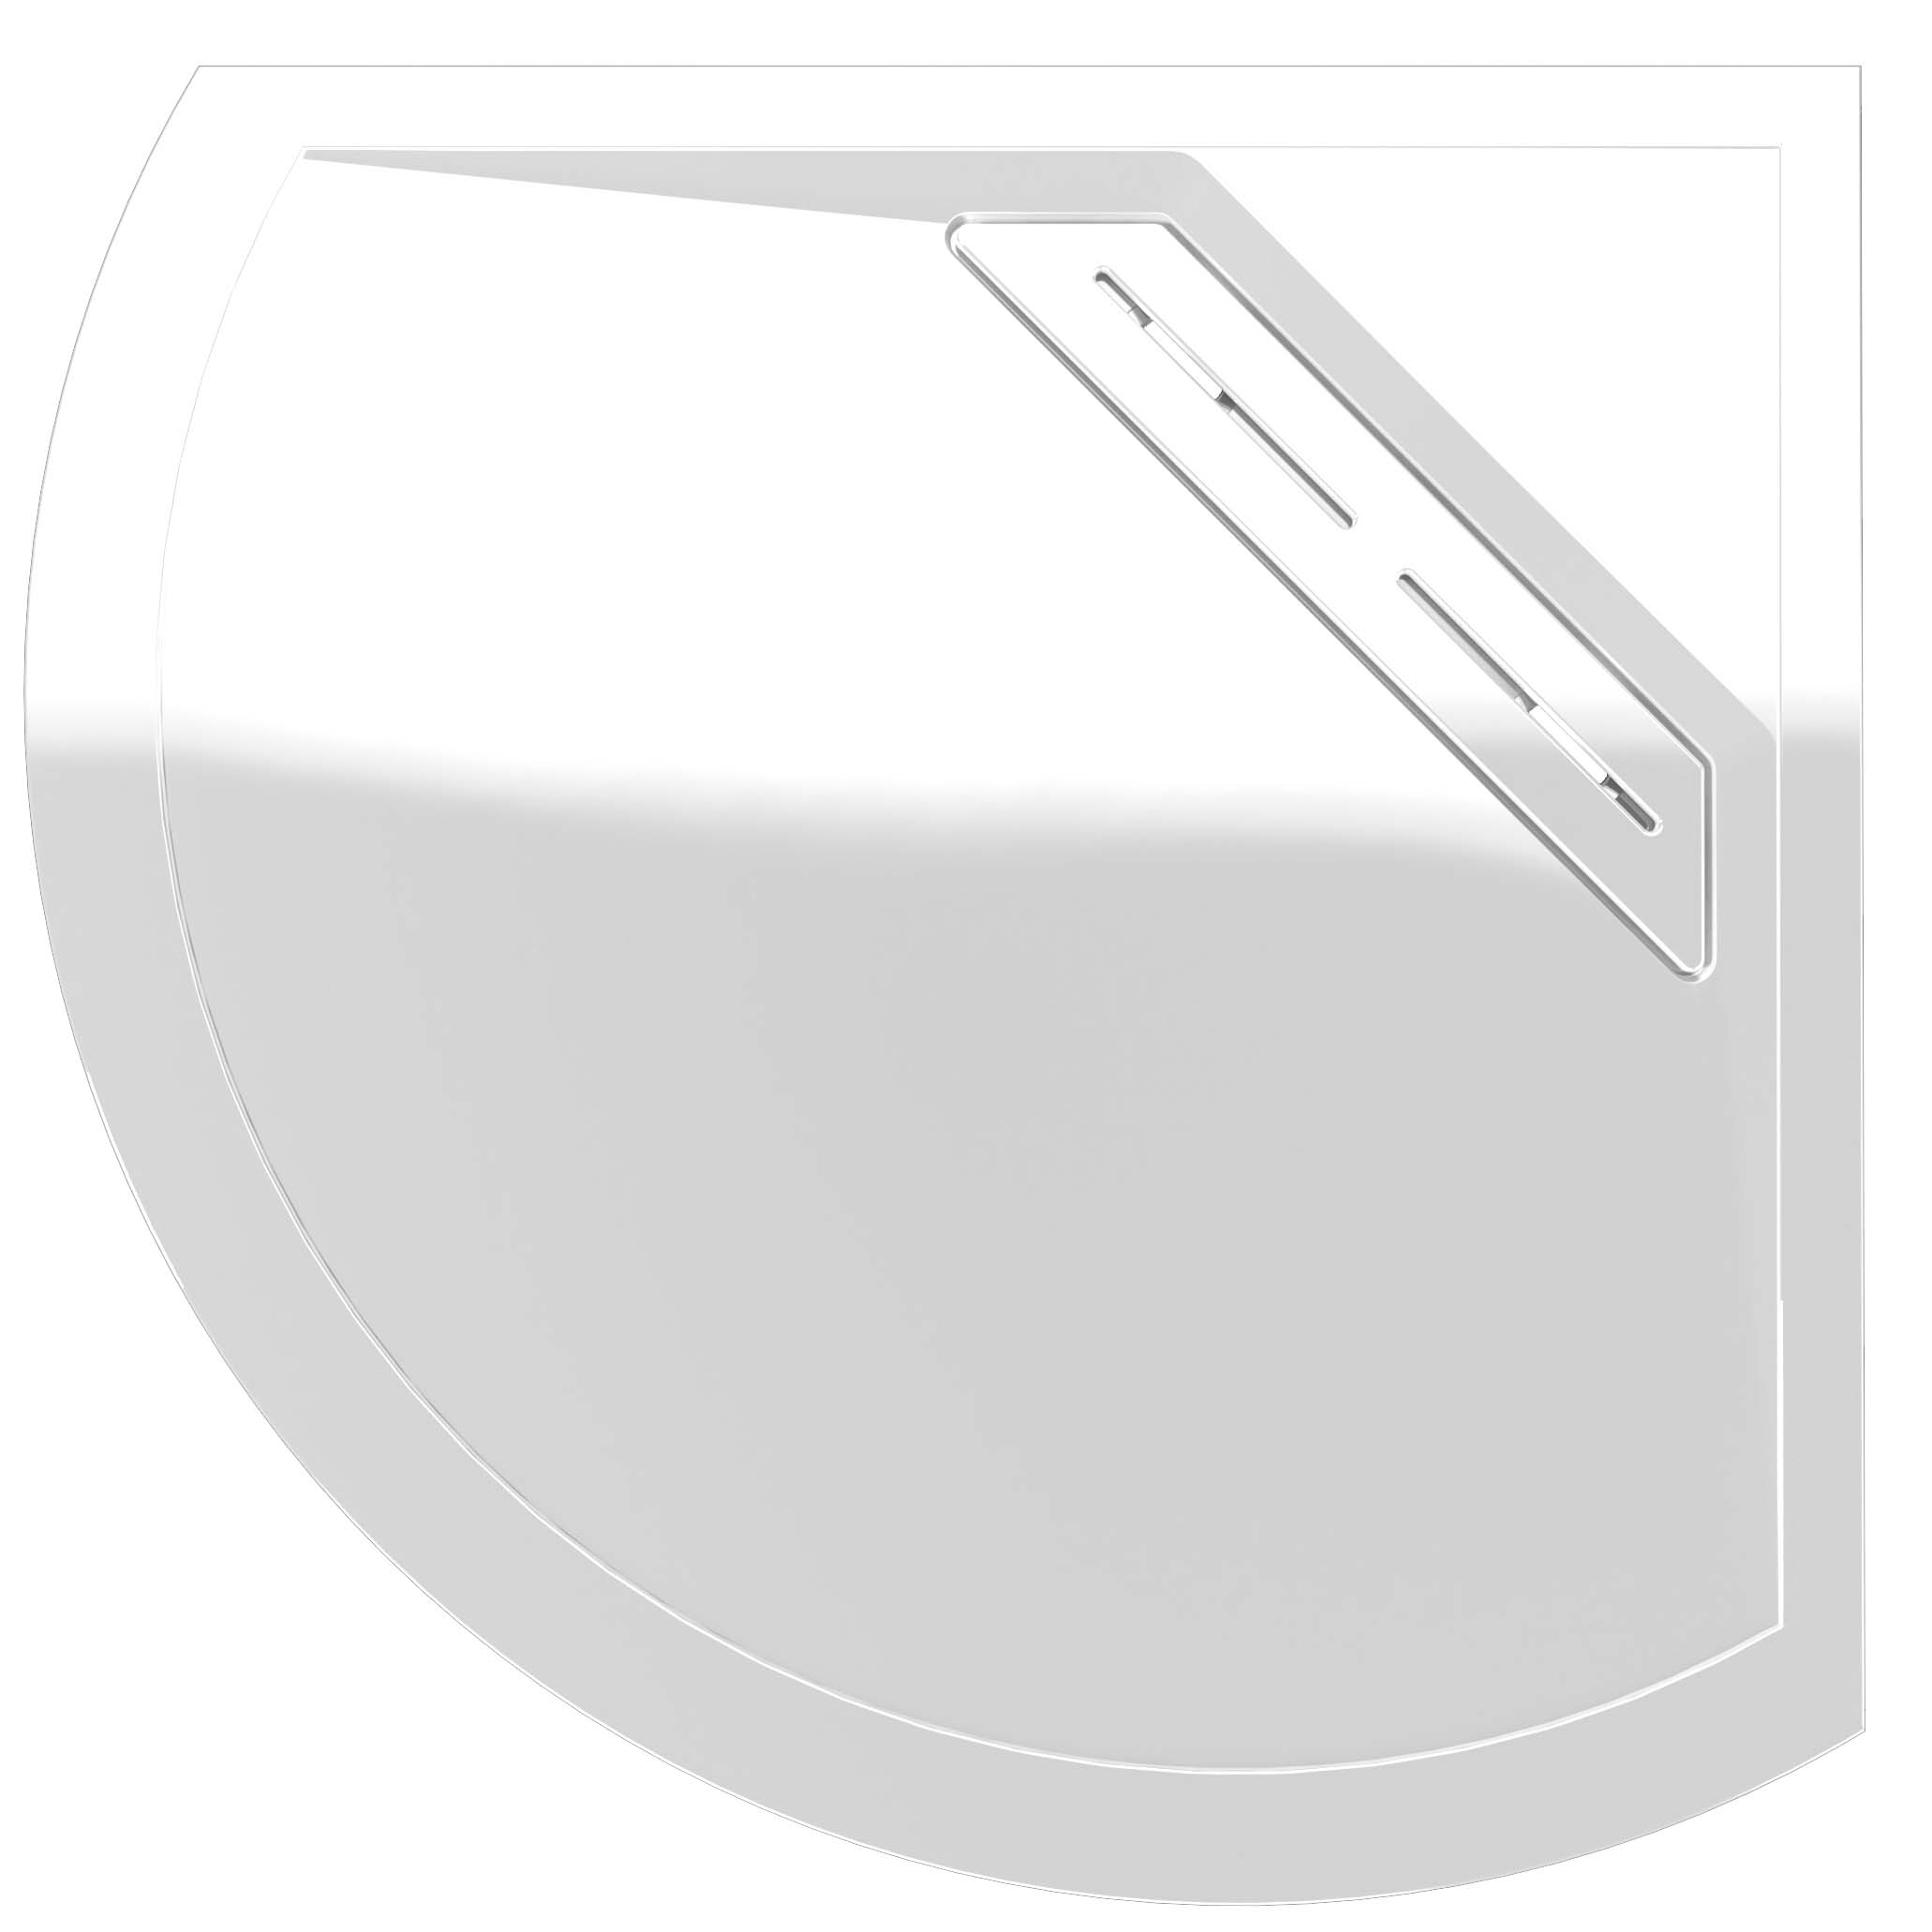 click on Curved Shower Tray image to enlarge